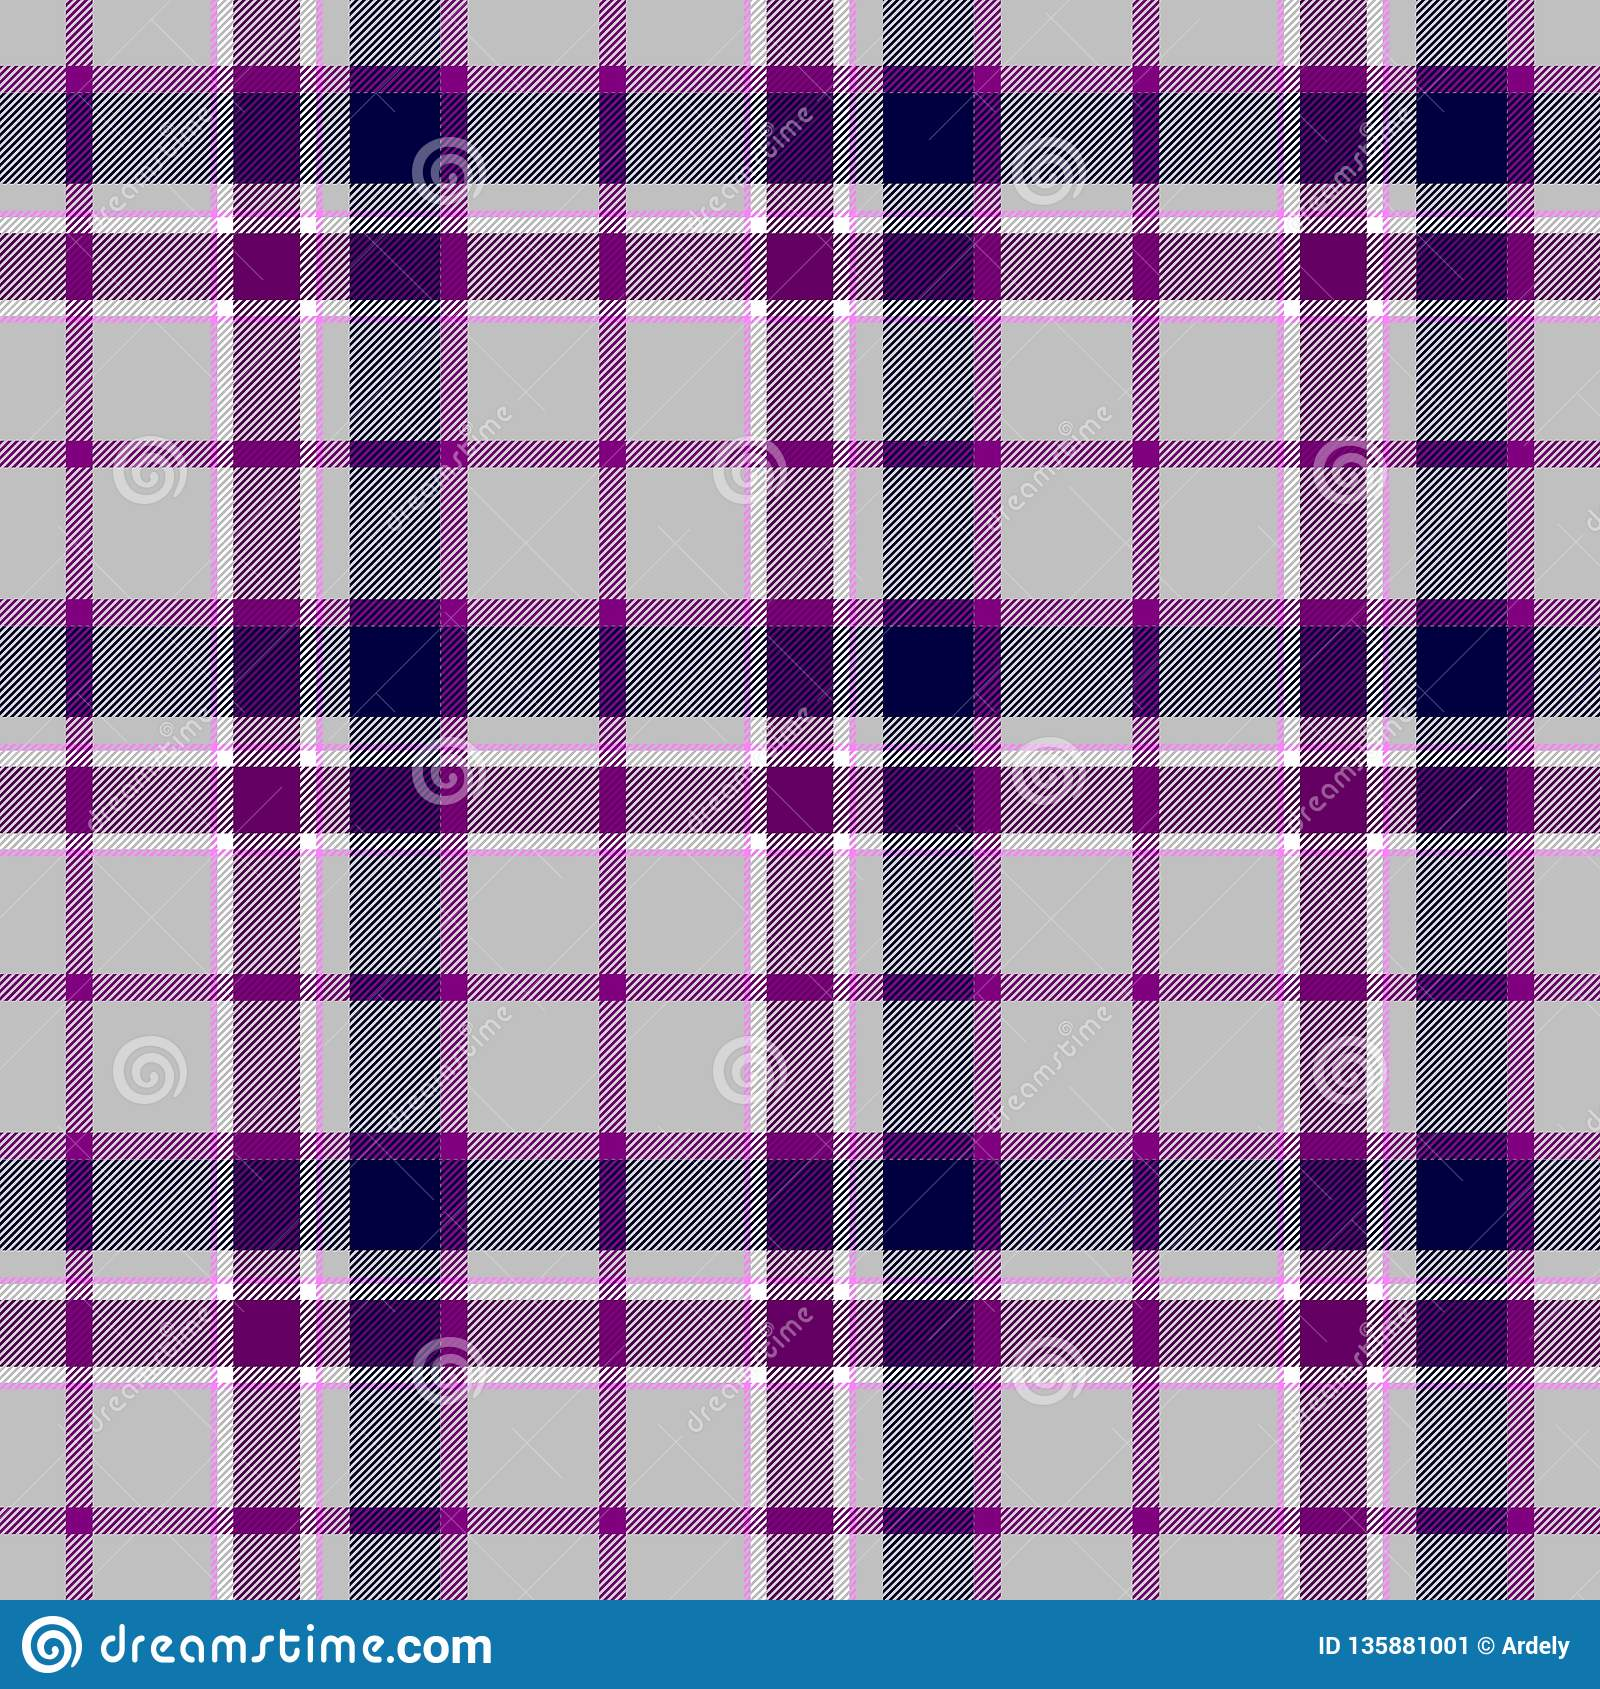 ec8d52a2c8 Checked diamond tartan plaid scotch kilt fabric seamless pattern texture  background - color gray, grey, purple, violet and white